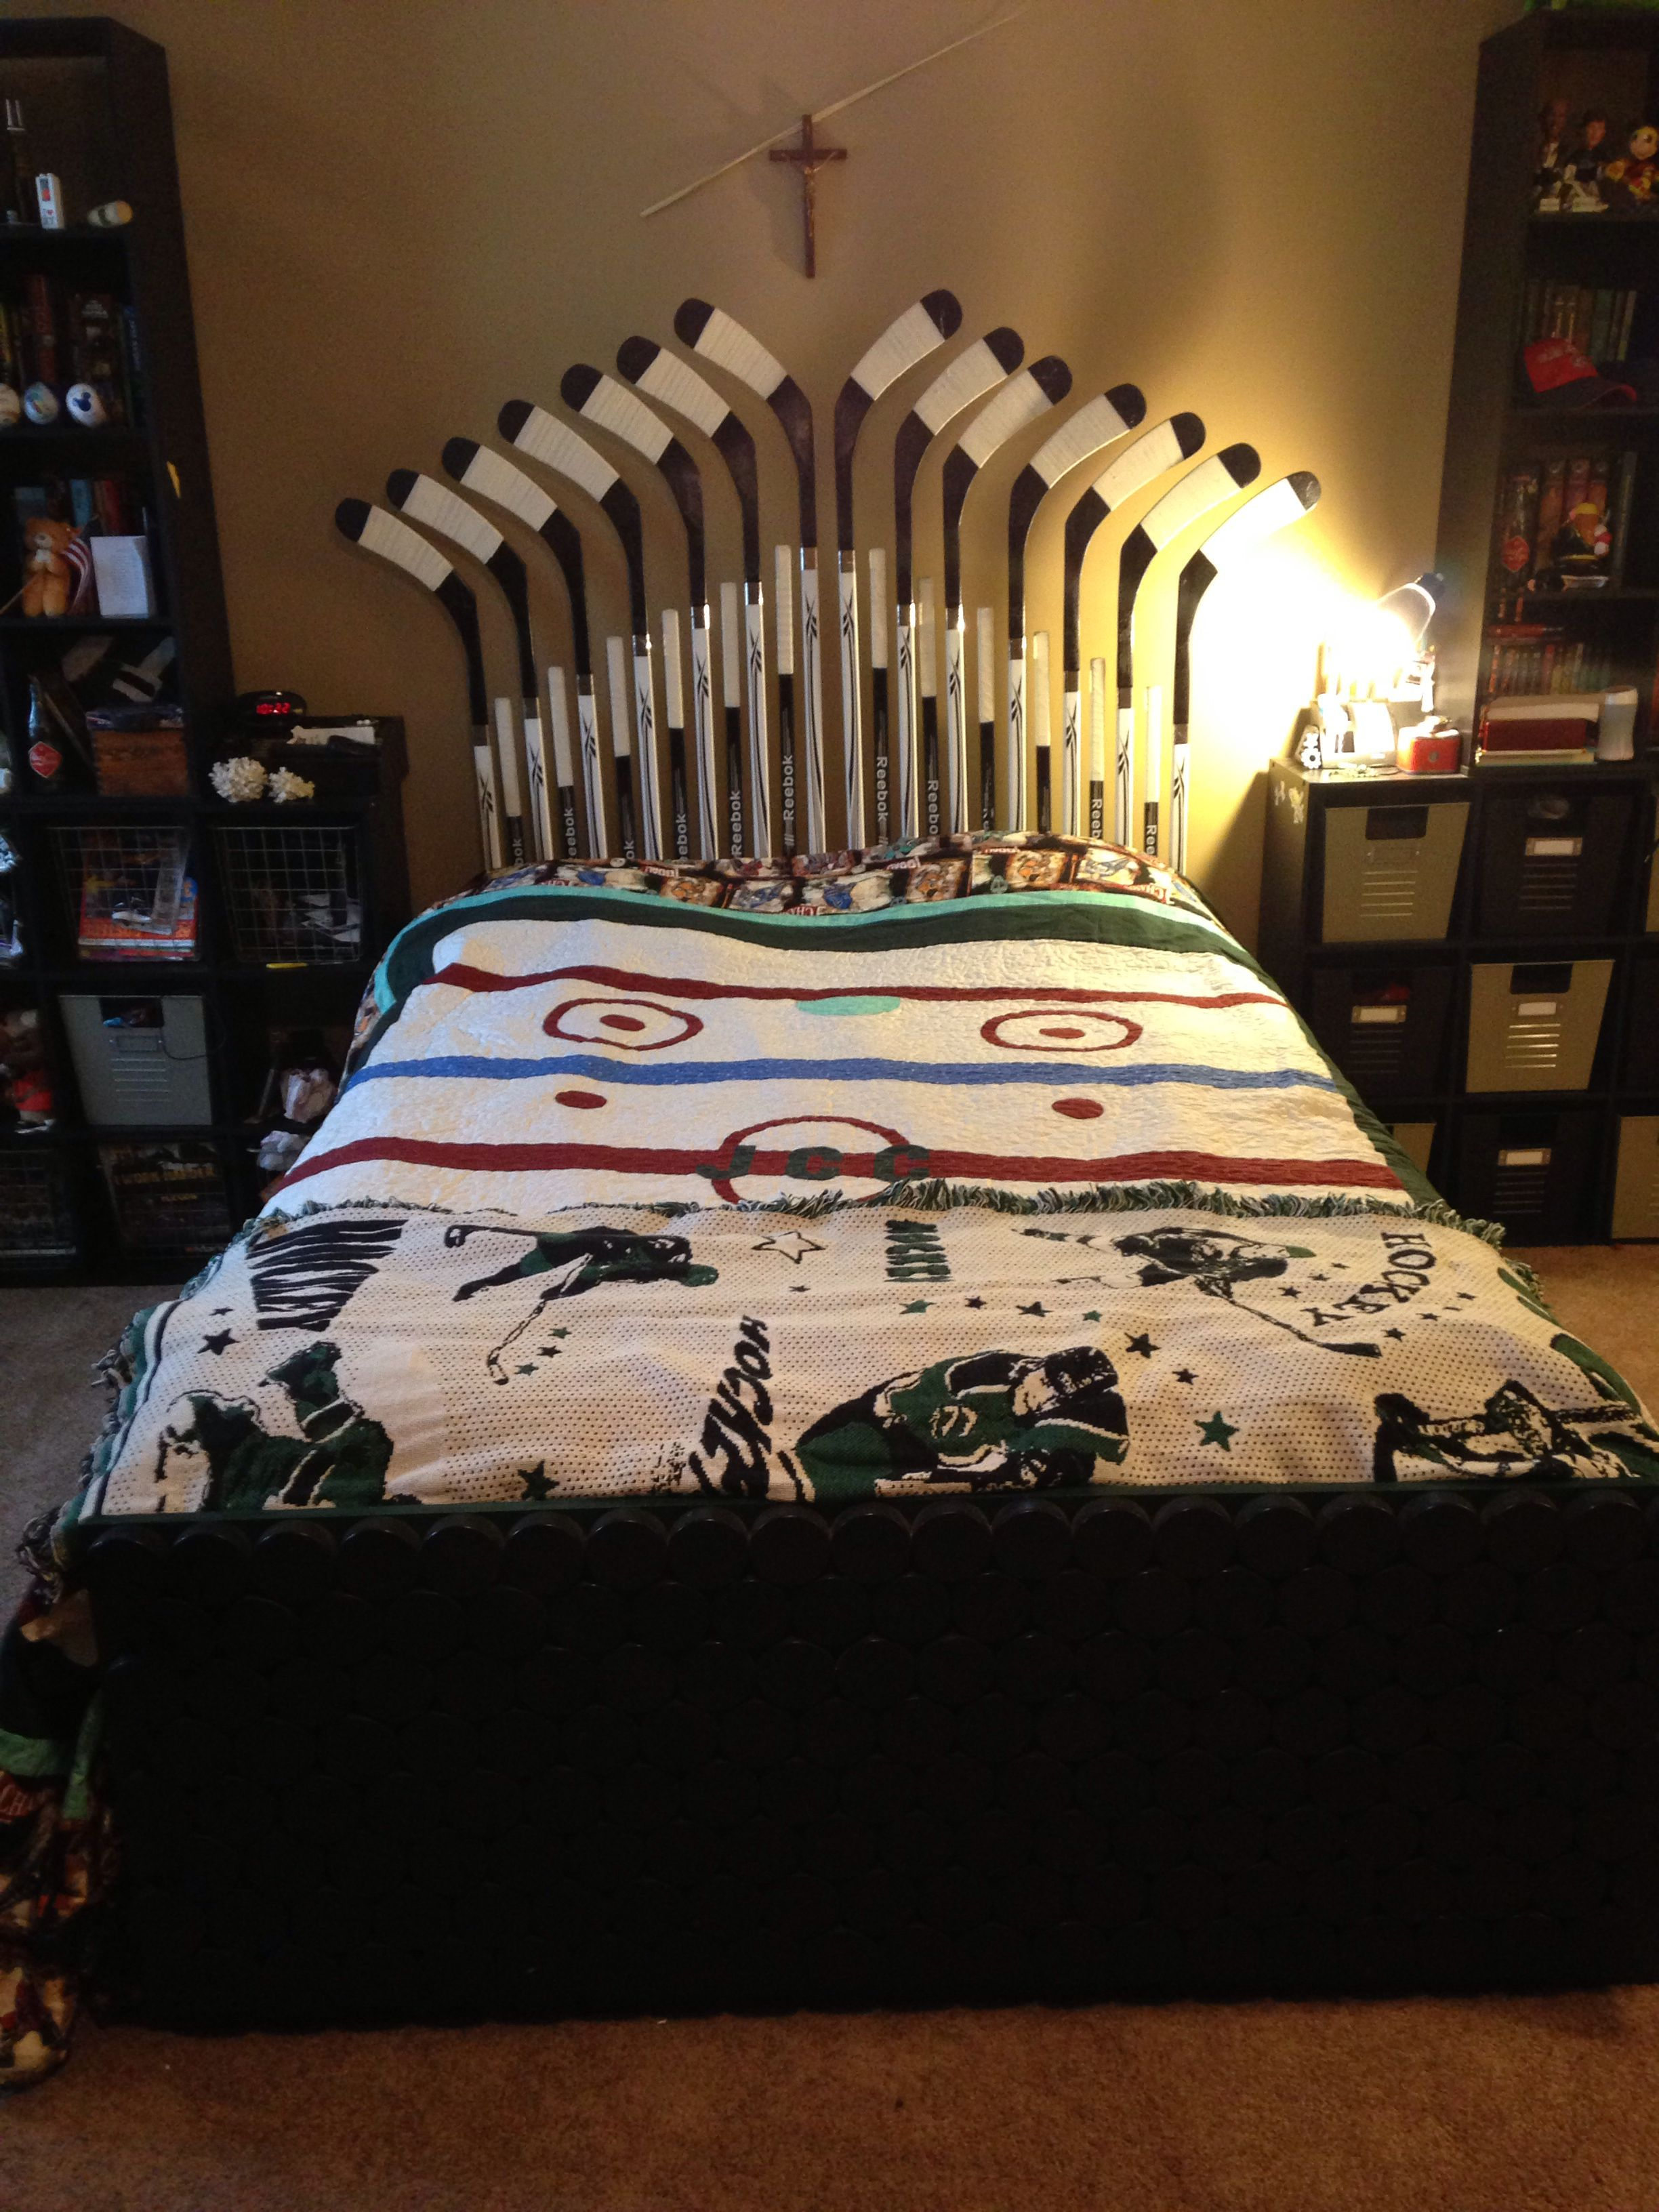 Complete Hockey Bed Stick Headboard Puck Footboard Arena Quilt Hockey Room Hockey Themed Room Hockey Bedroom